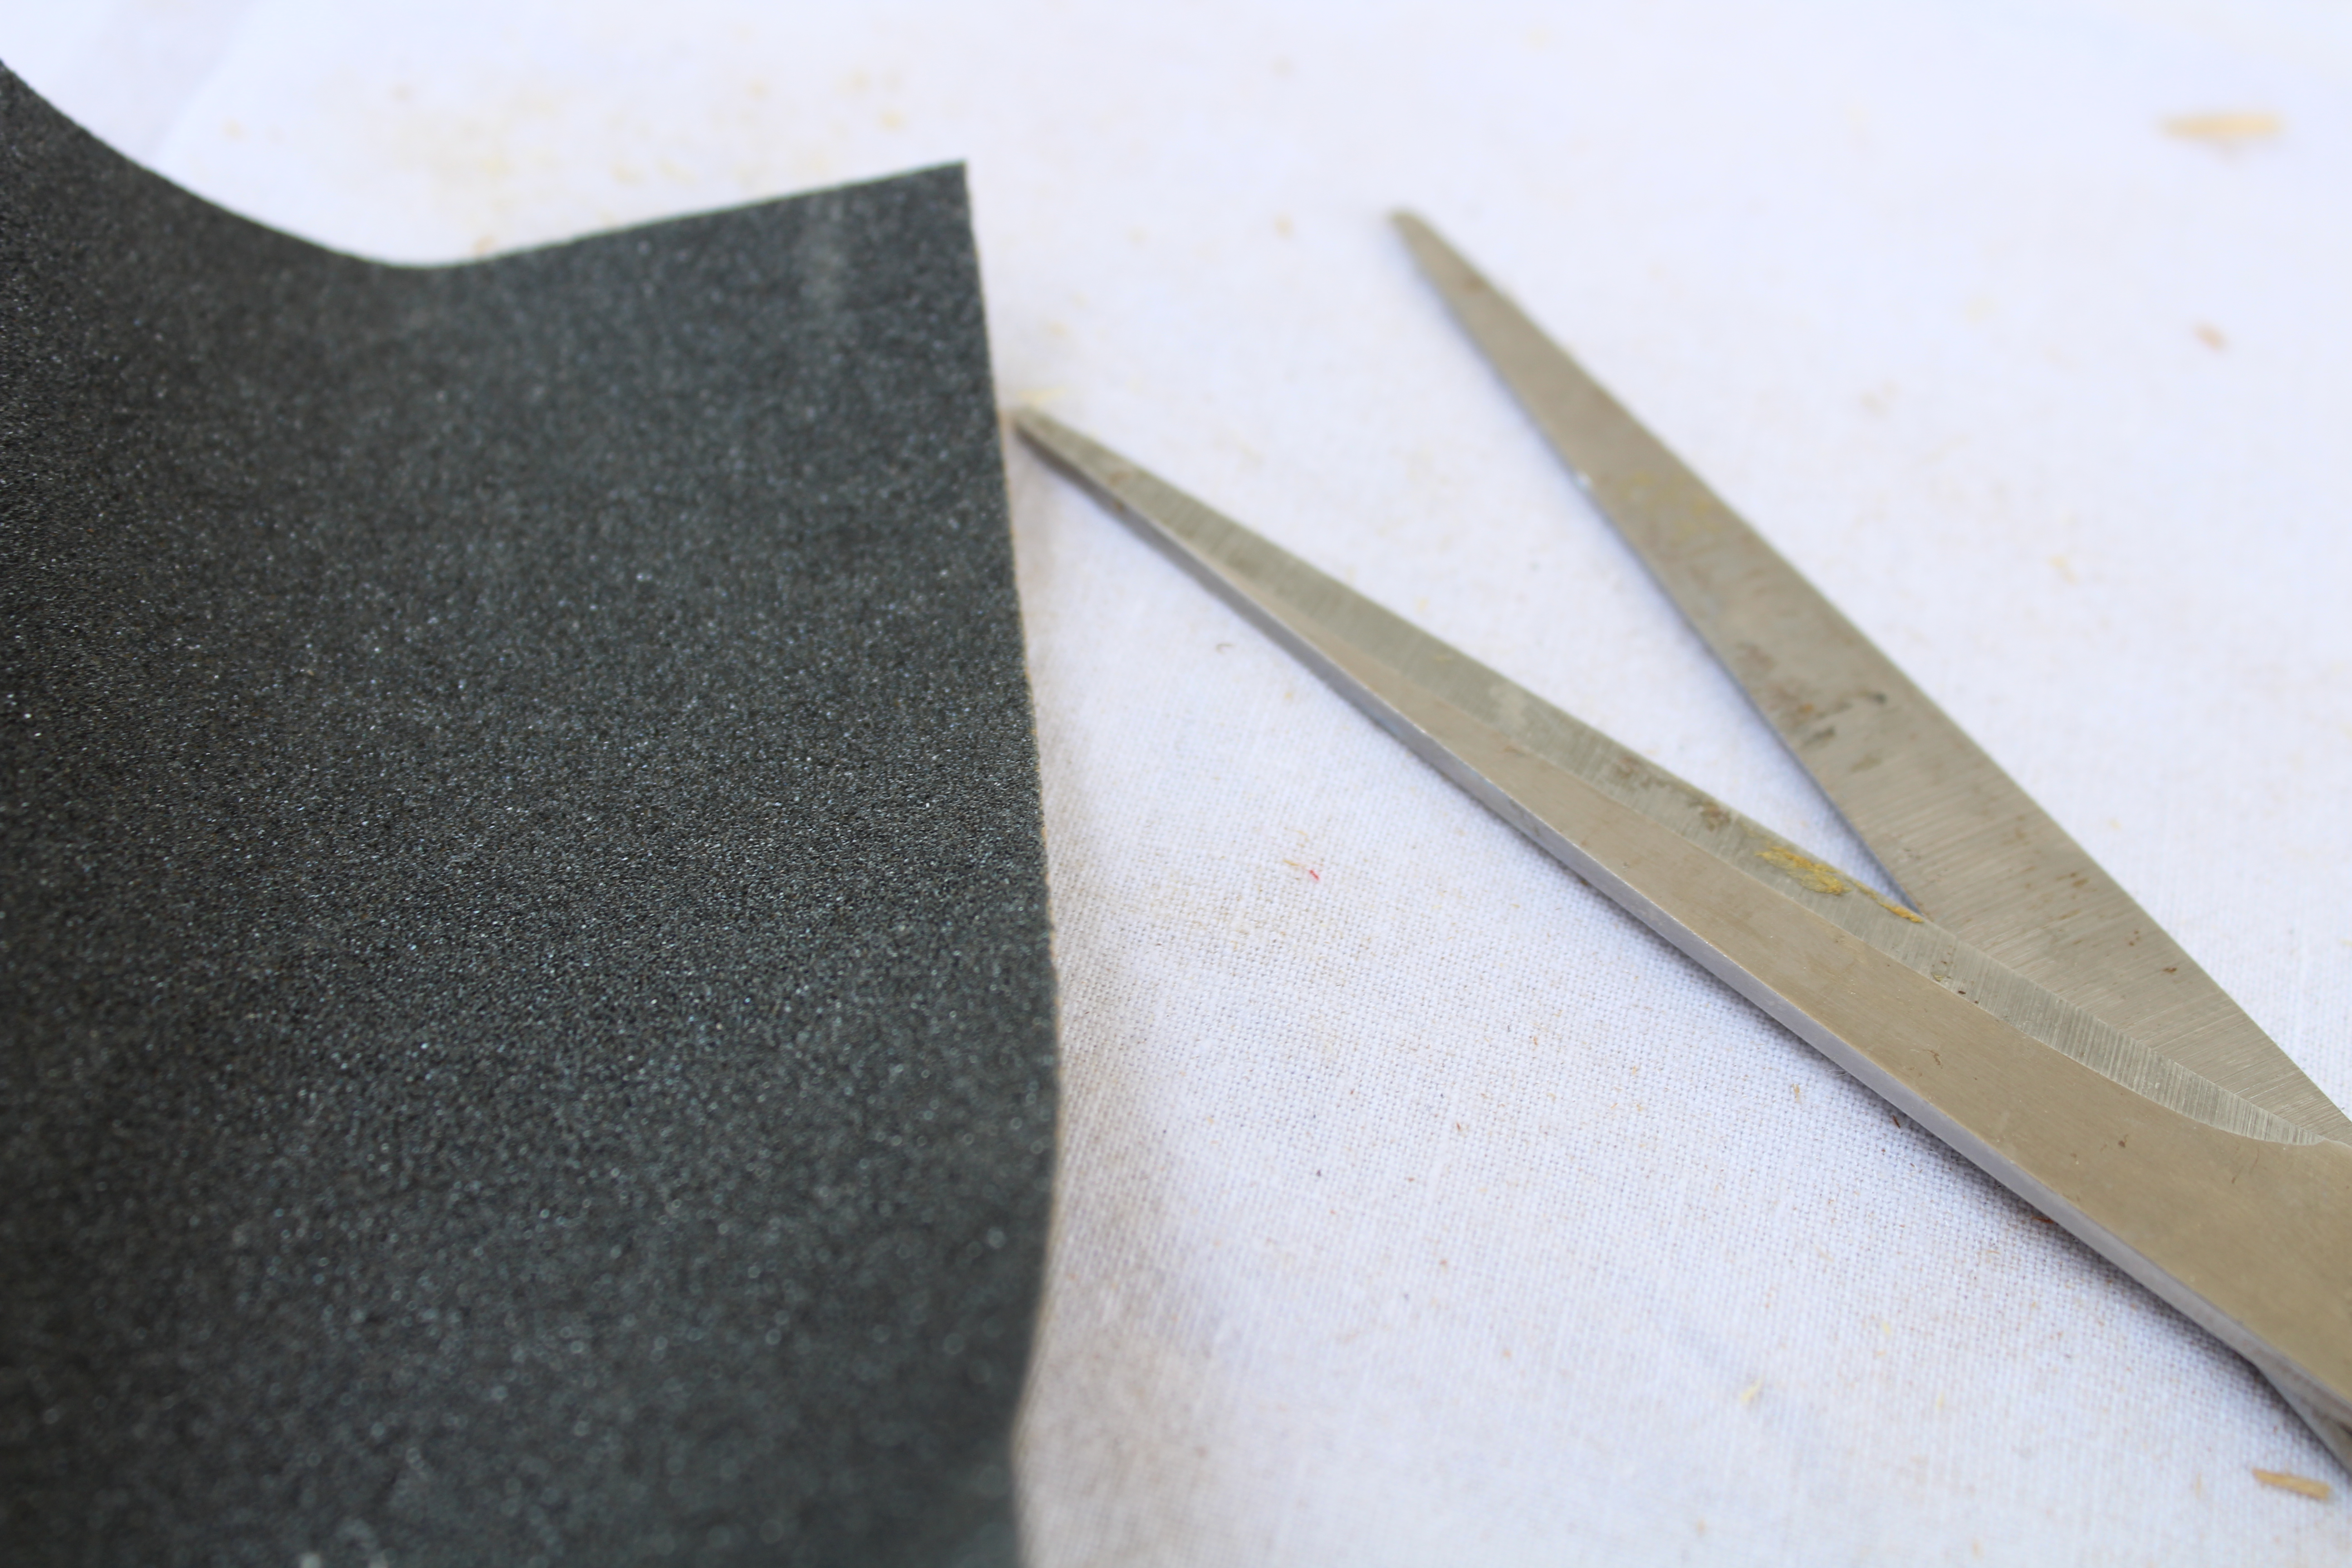 Picture of Sanding Tools